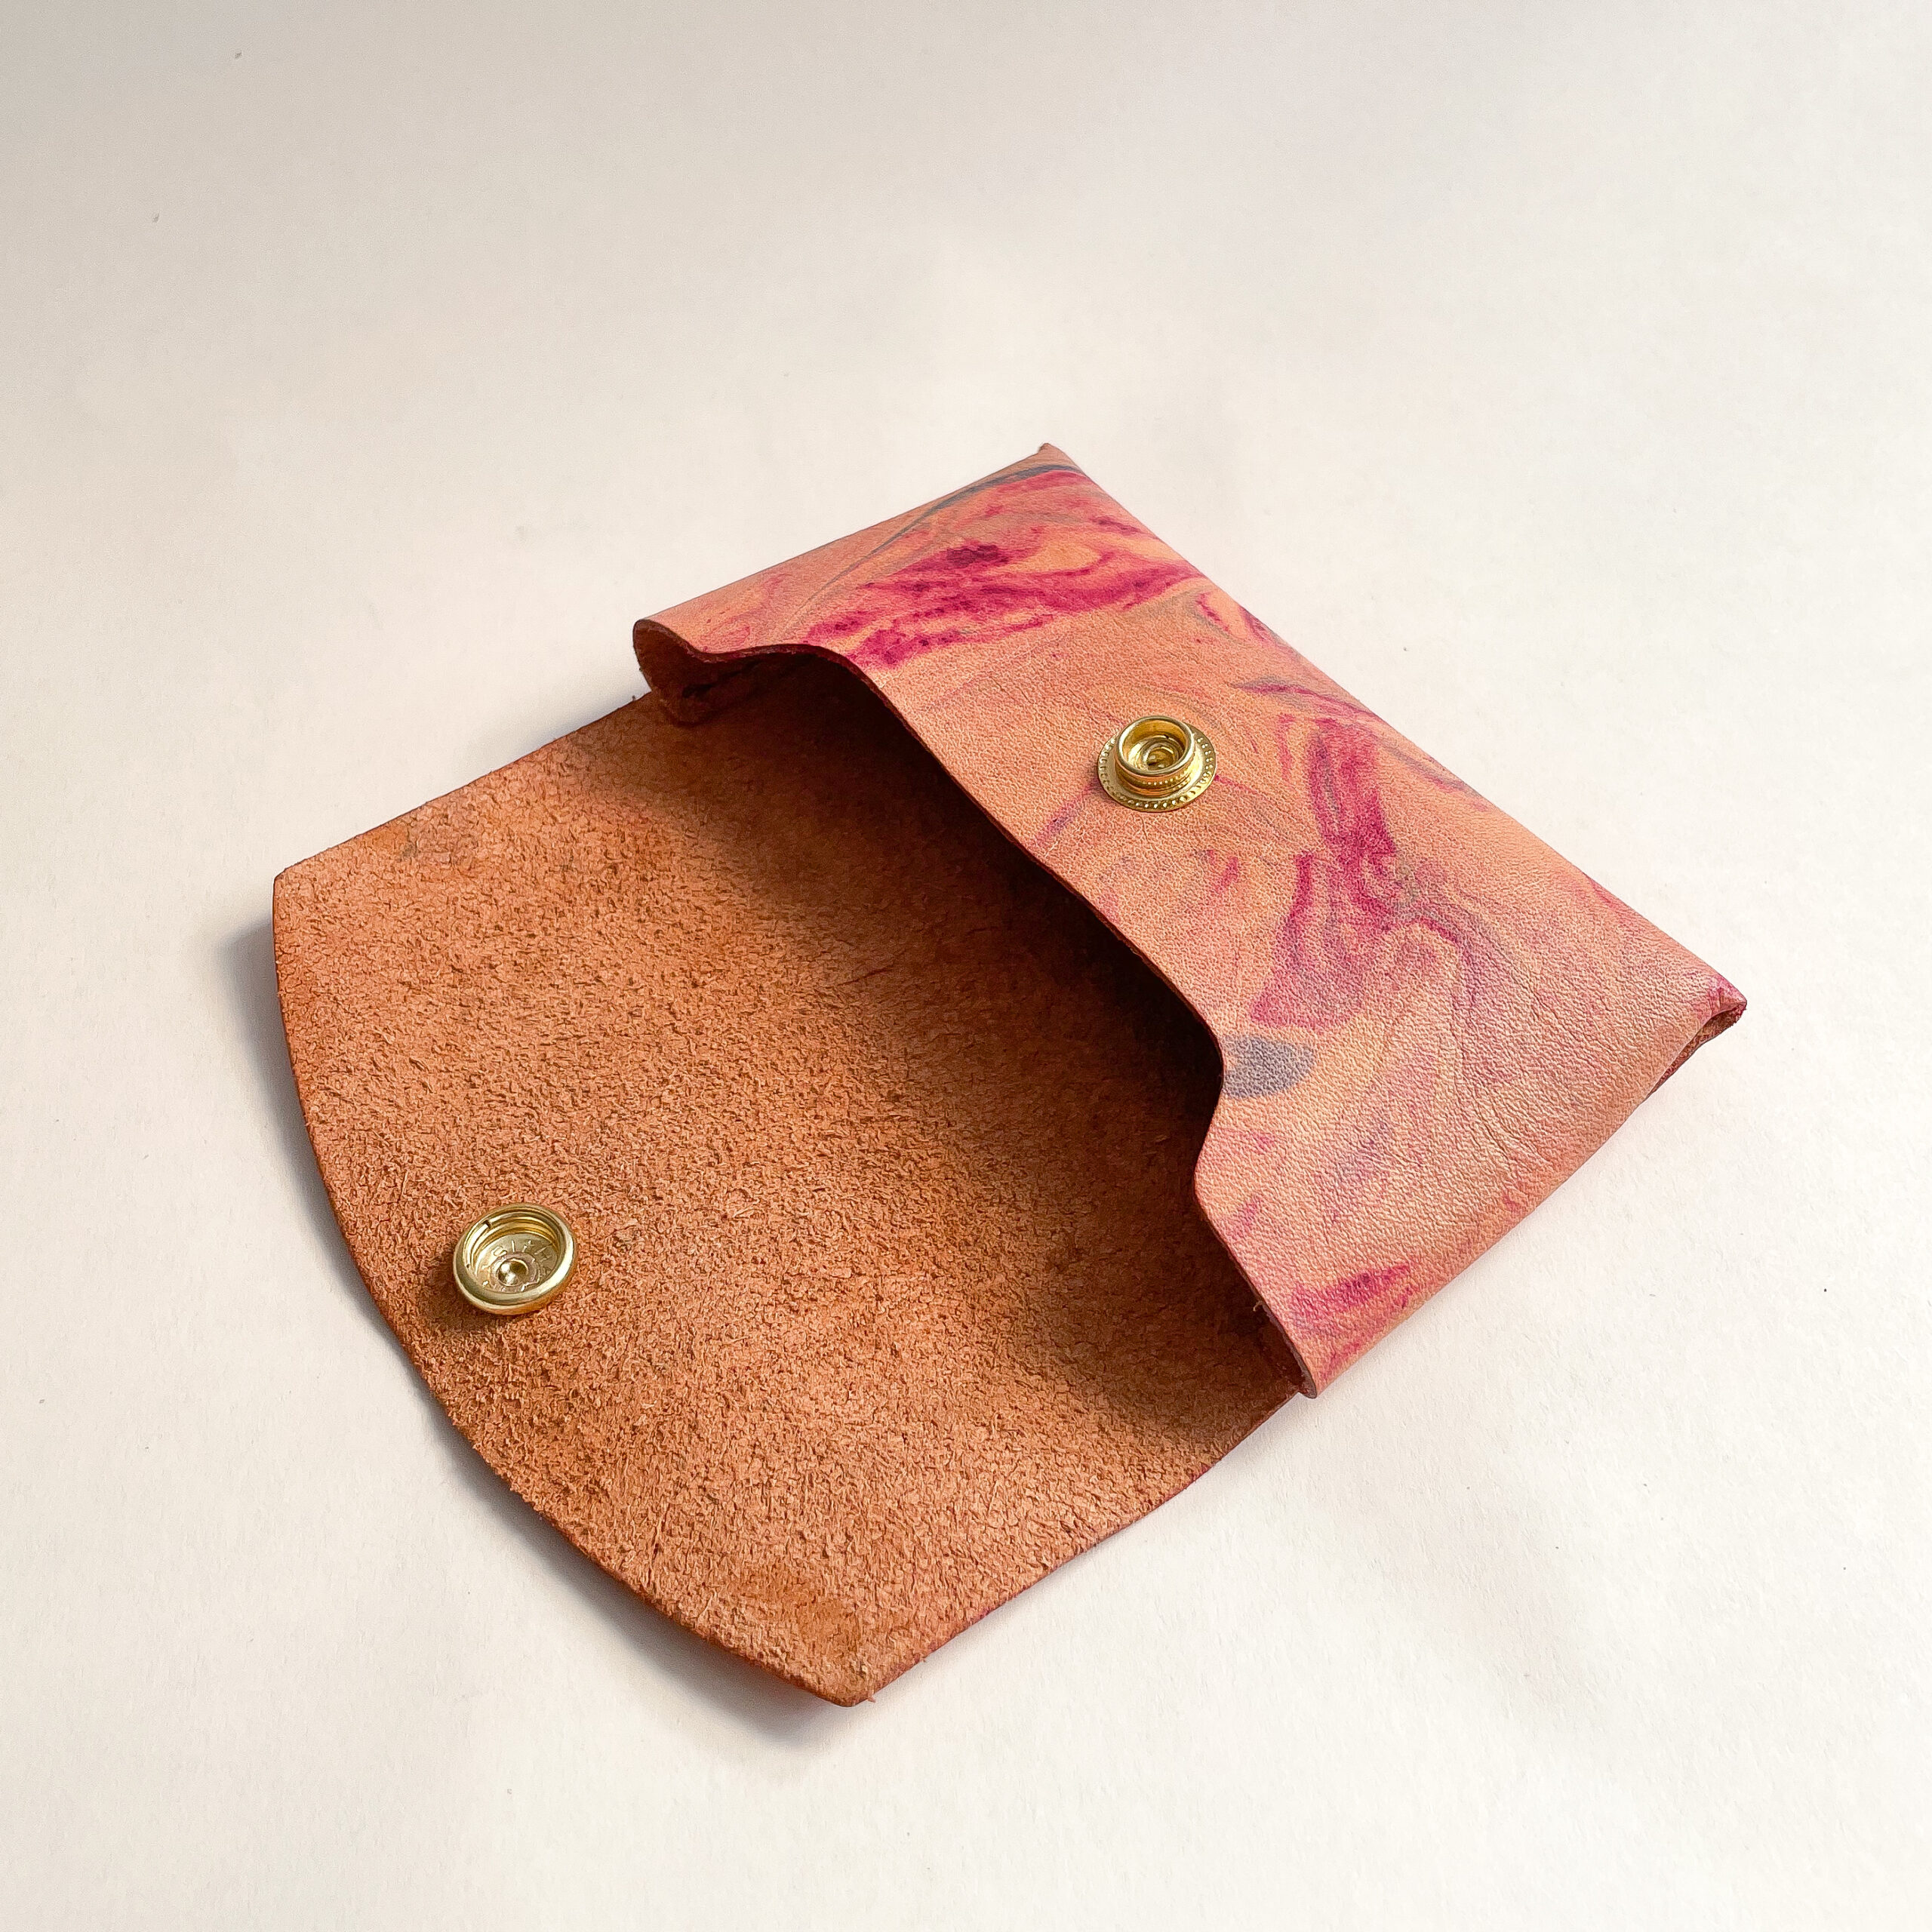 Marbled Leather Card Case laying flat and open